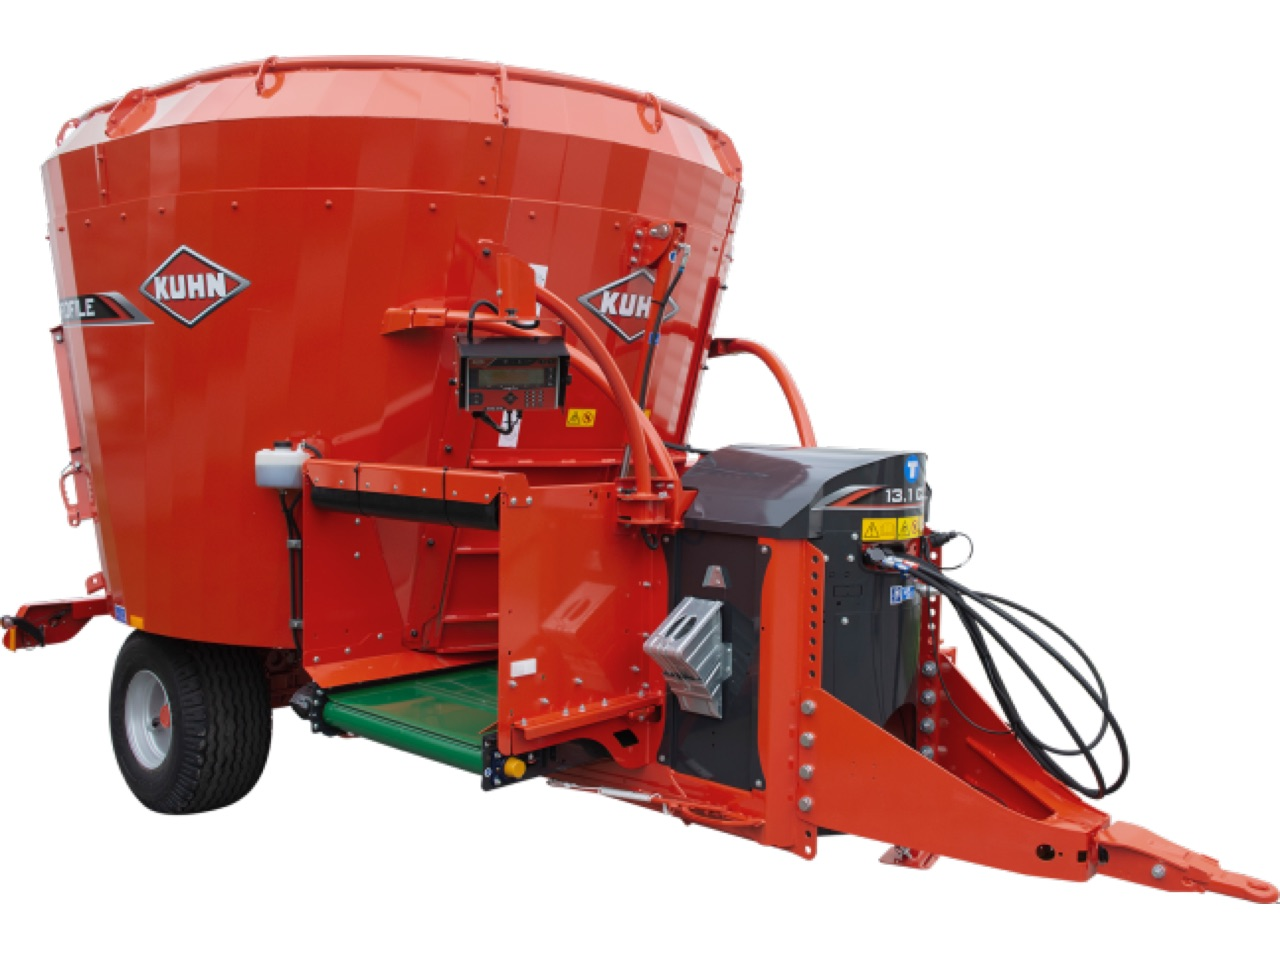 Kuhn Profile 1 CL Profile 13.1 CL